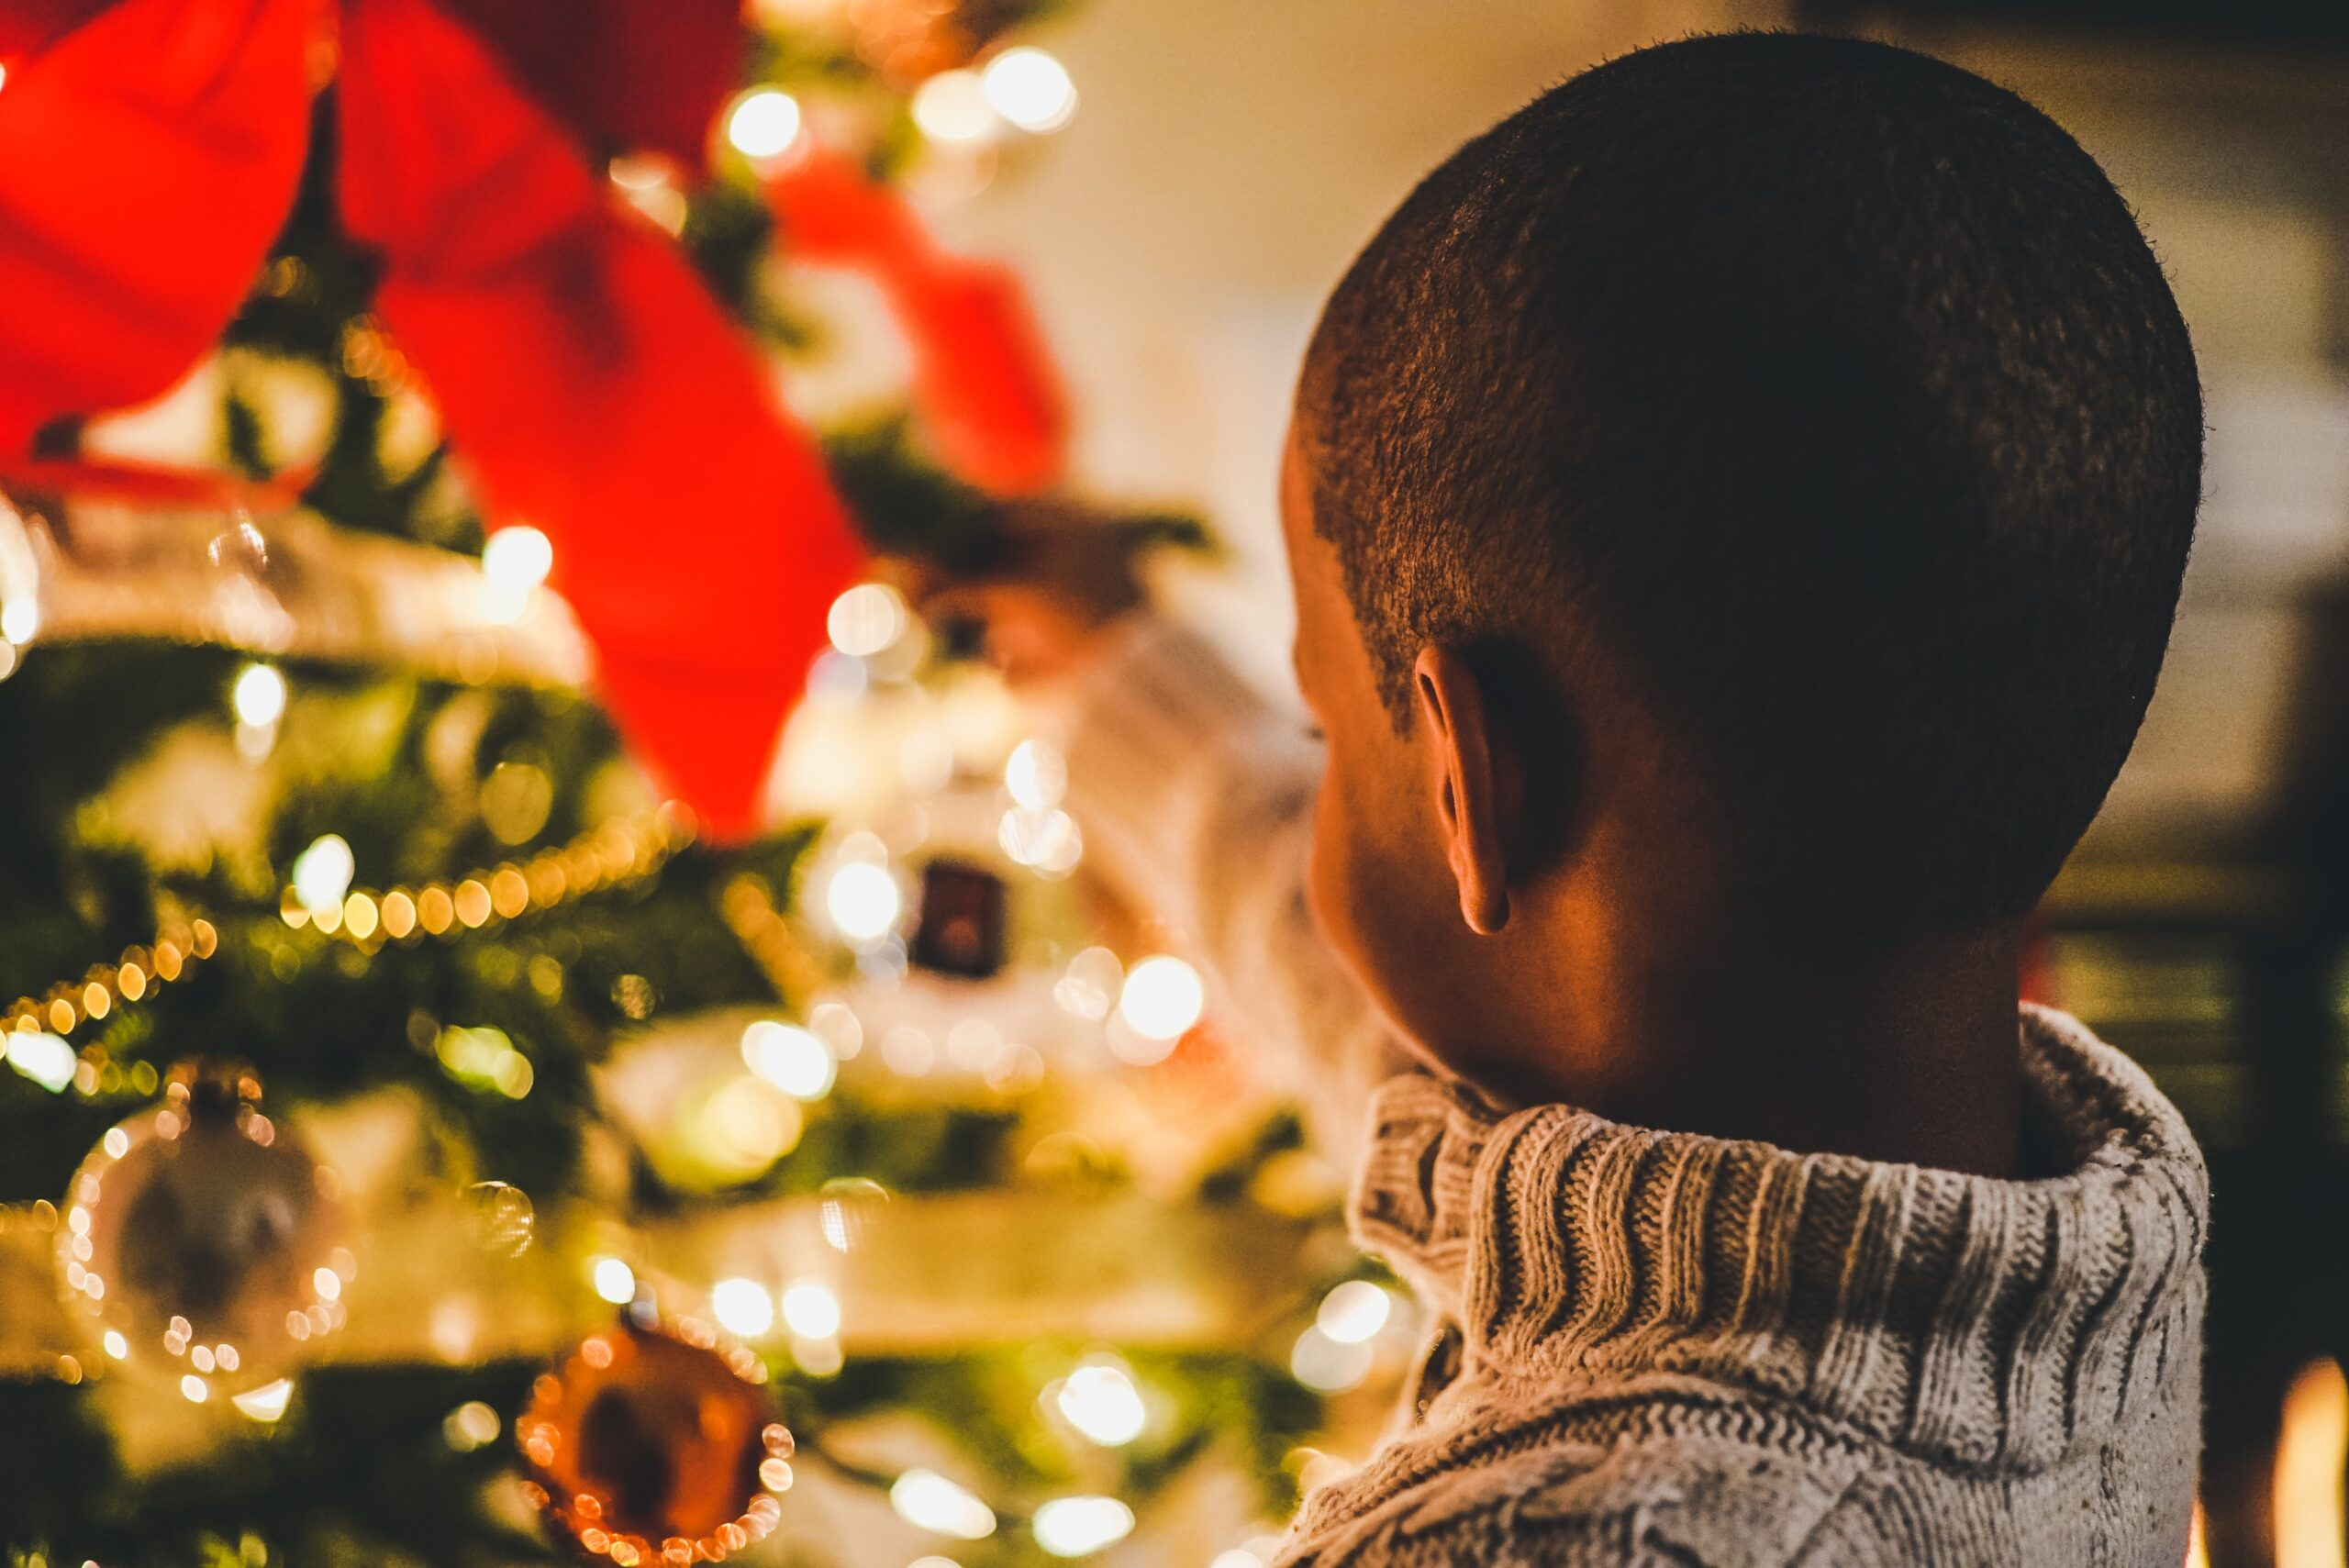 Child looking at a bright warm Christmas tree